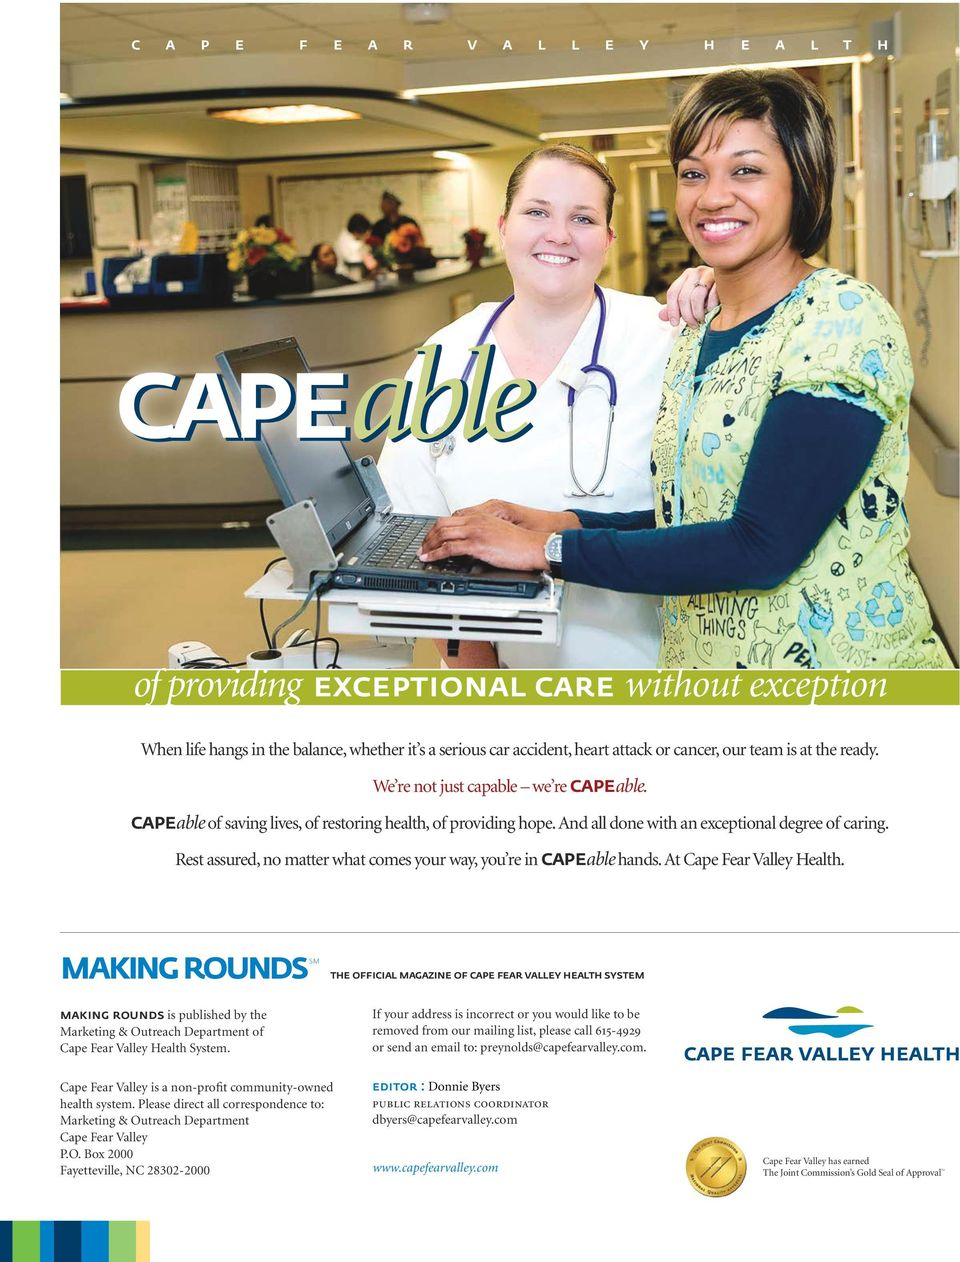 Rest assured, no matter what comes your way, you re in capeable hands. At Cape Fear Valley Health.